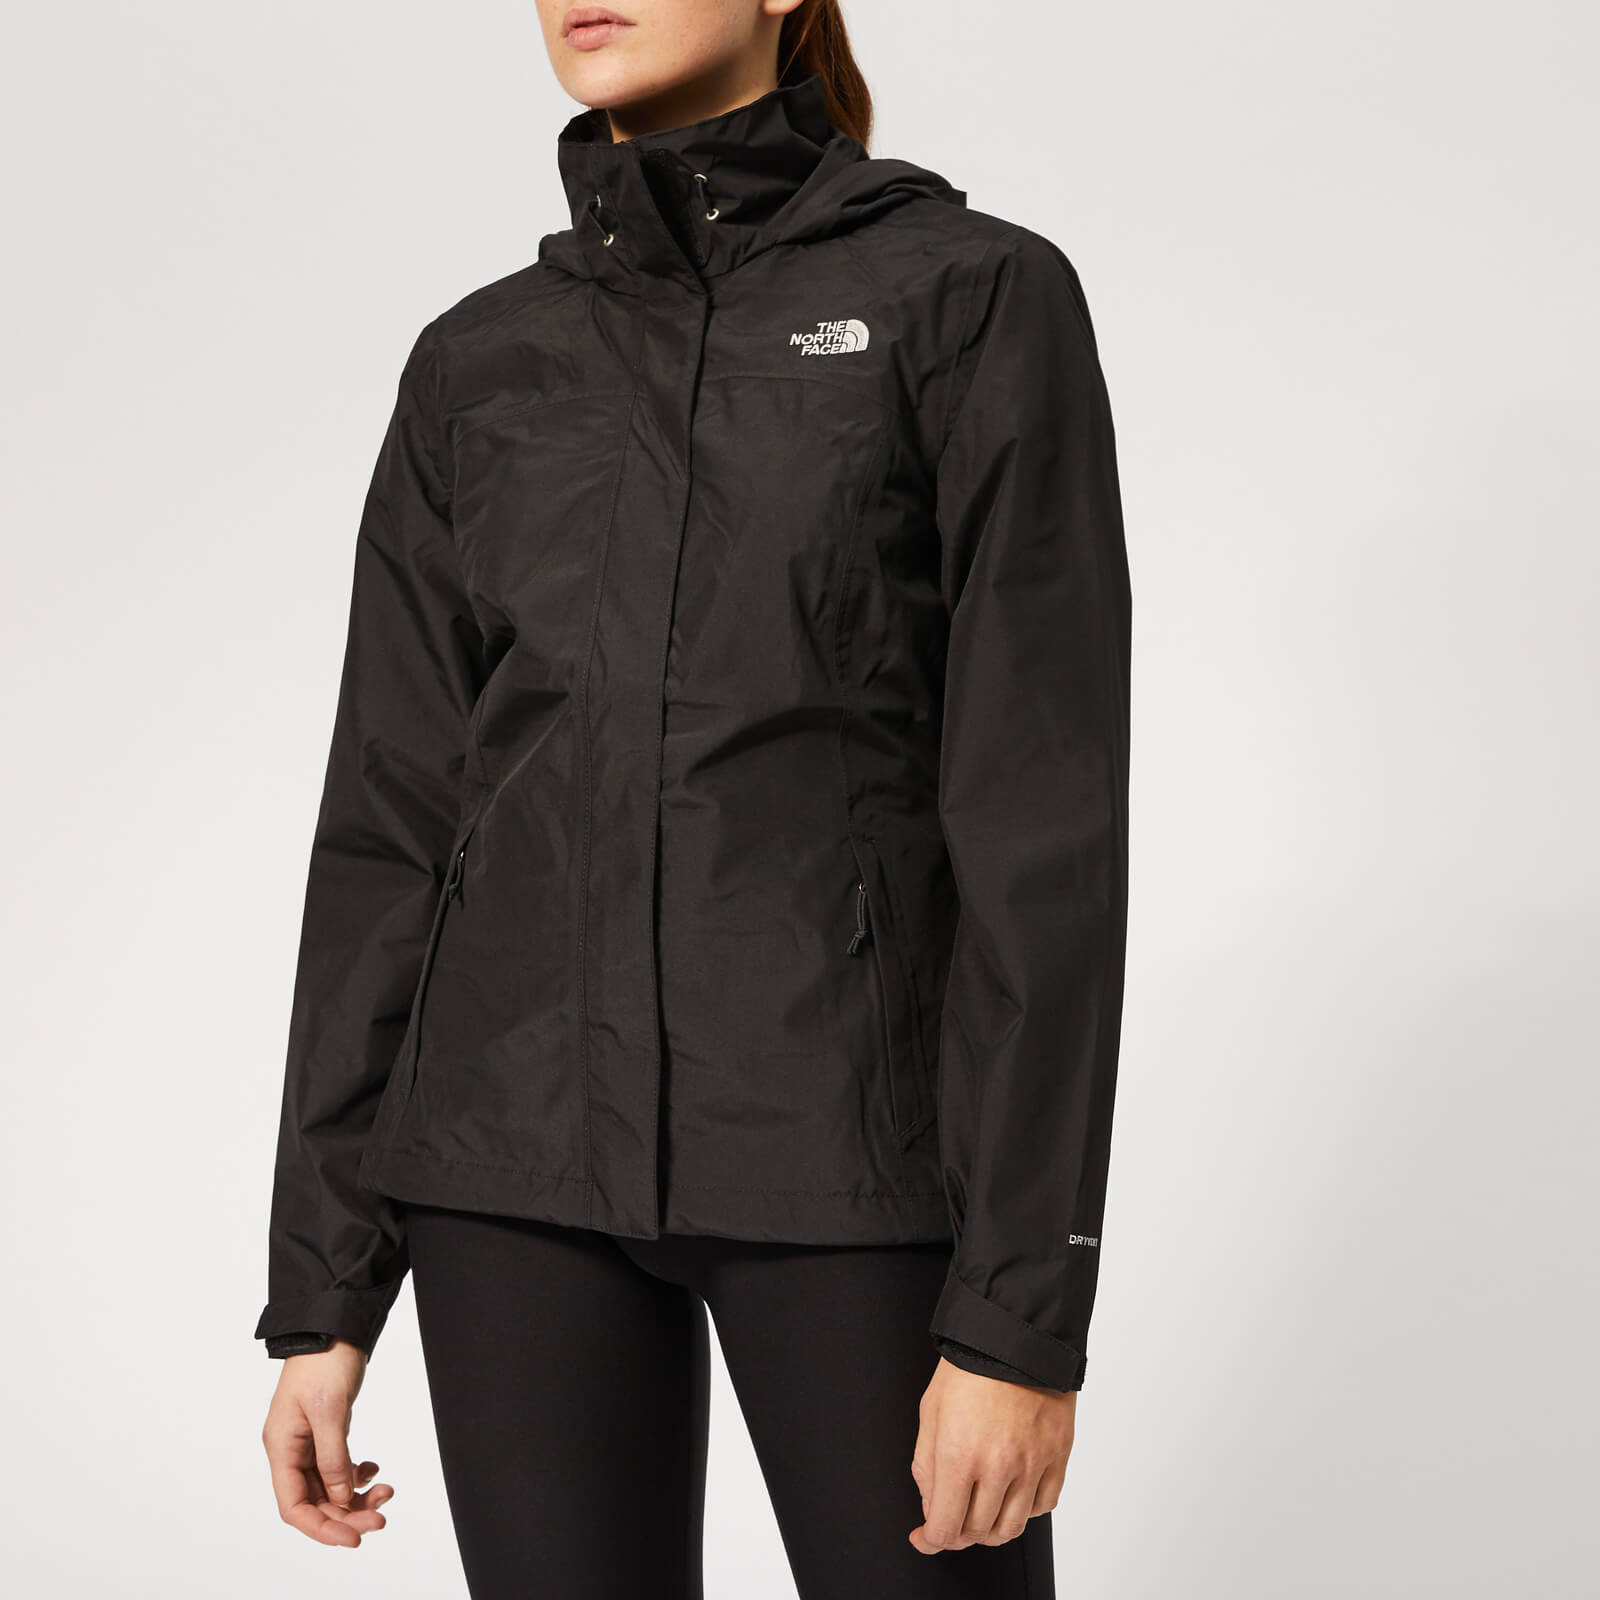 159fe69dca04 The North Face Women s Sangro Jacket - TNF Black Womens Clothing ...